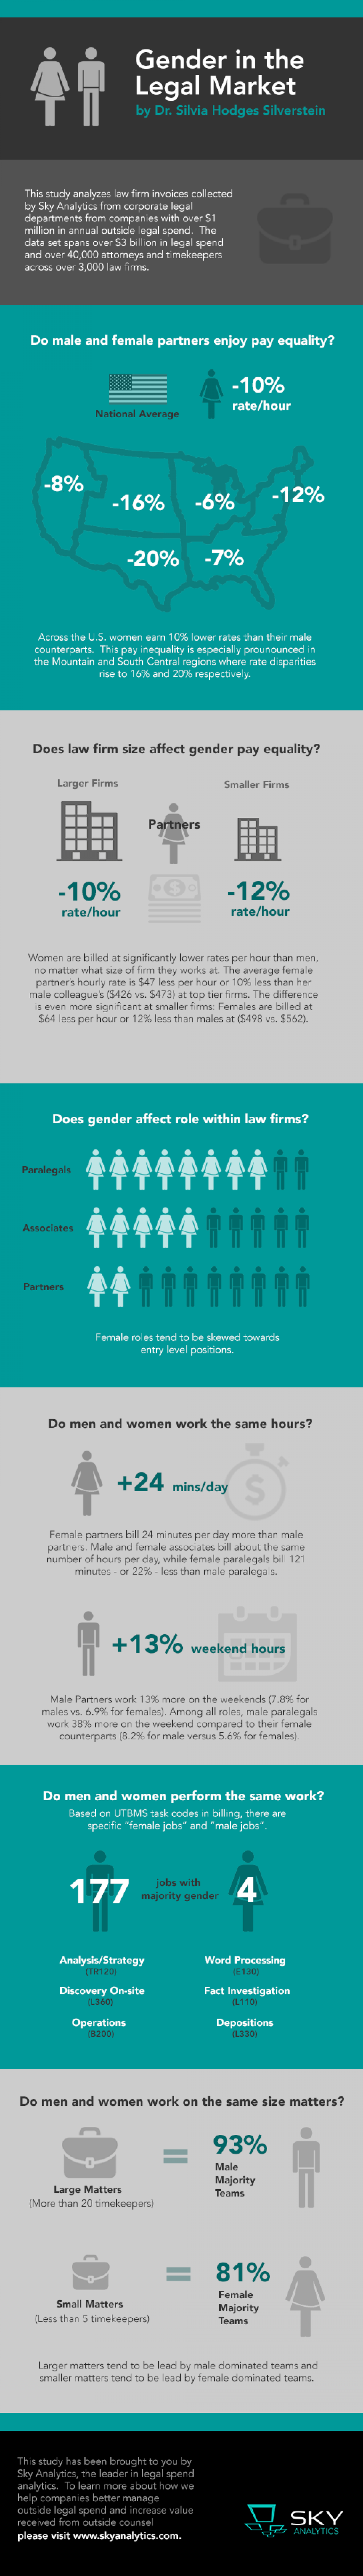 Gender Inequality in the Legal Market Infographic